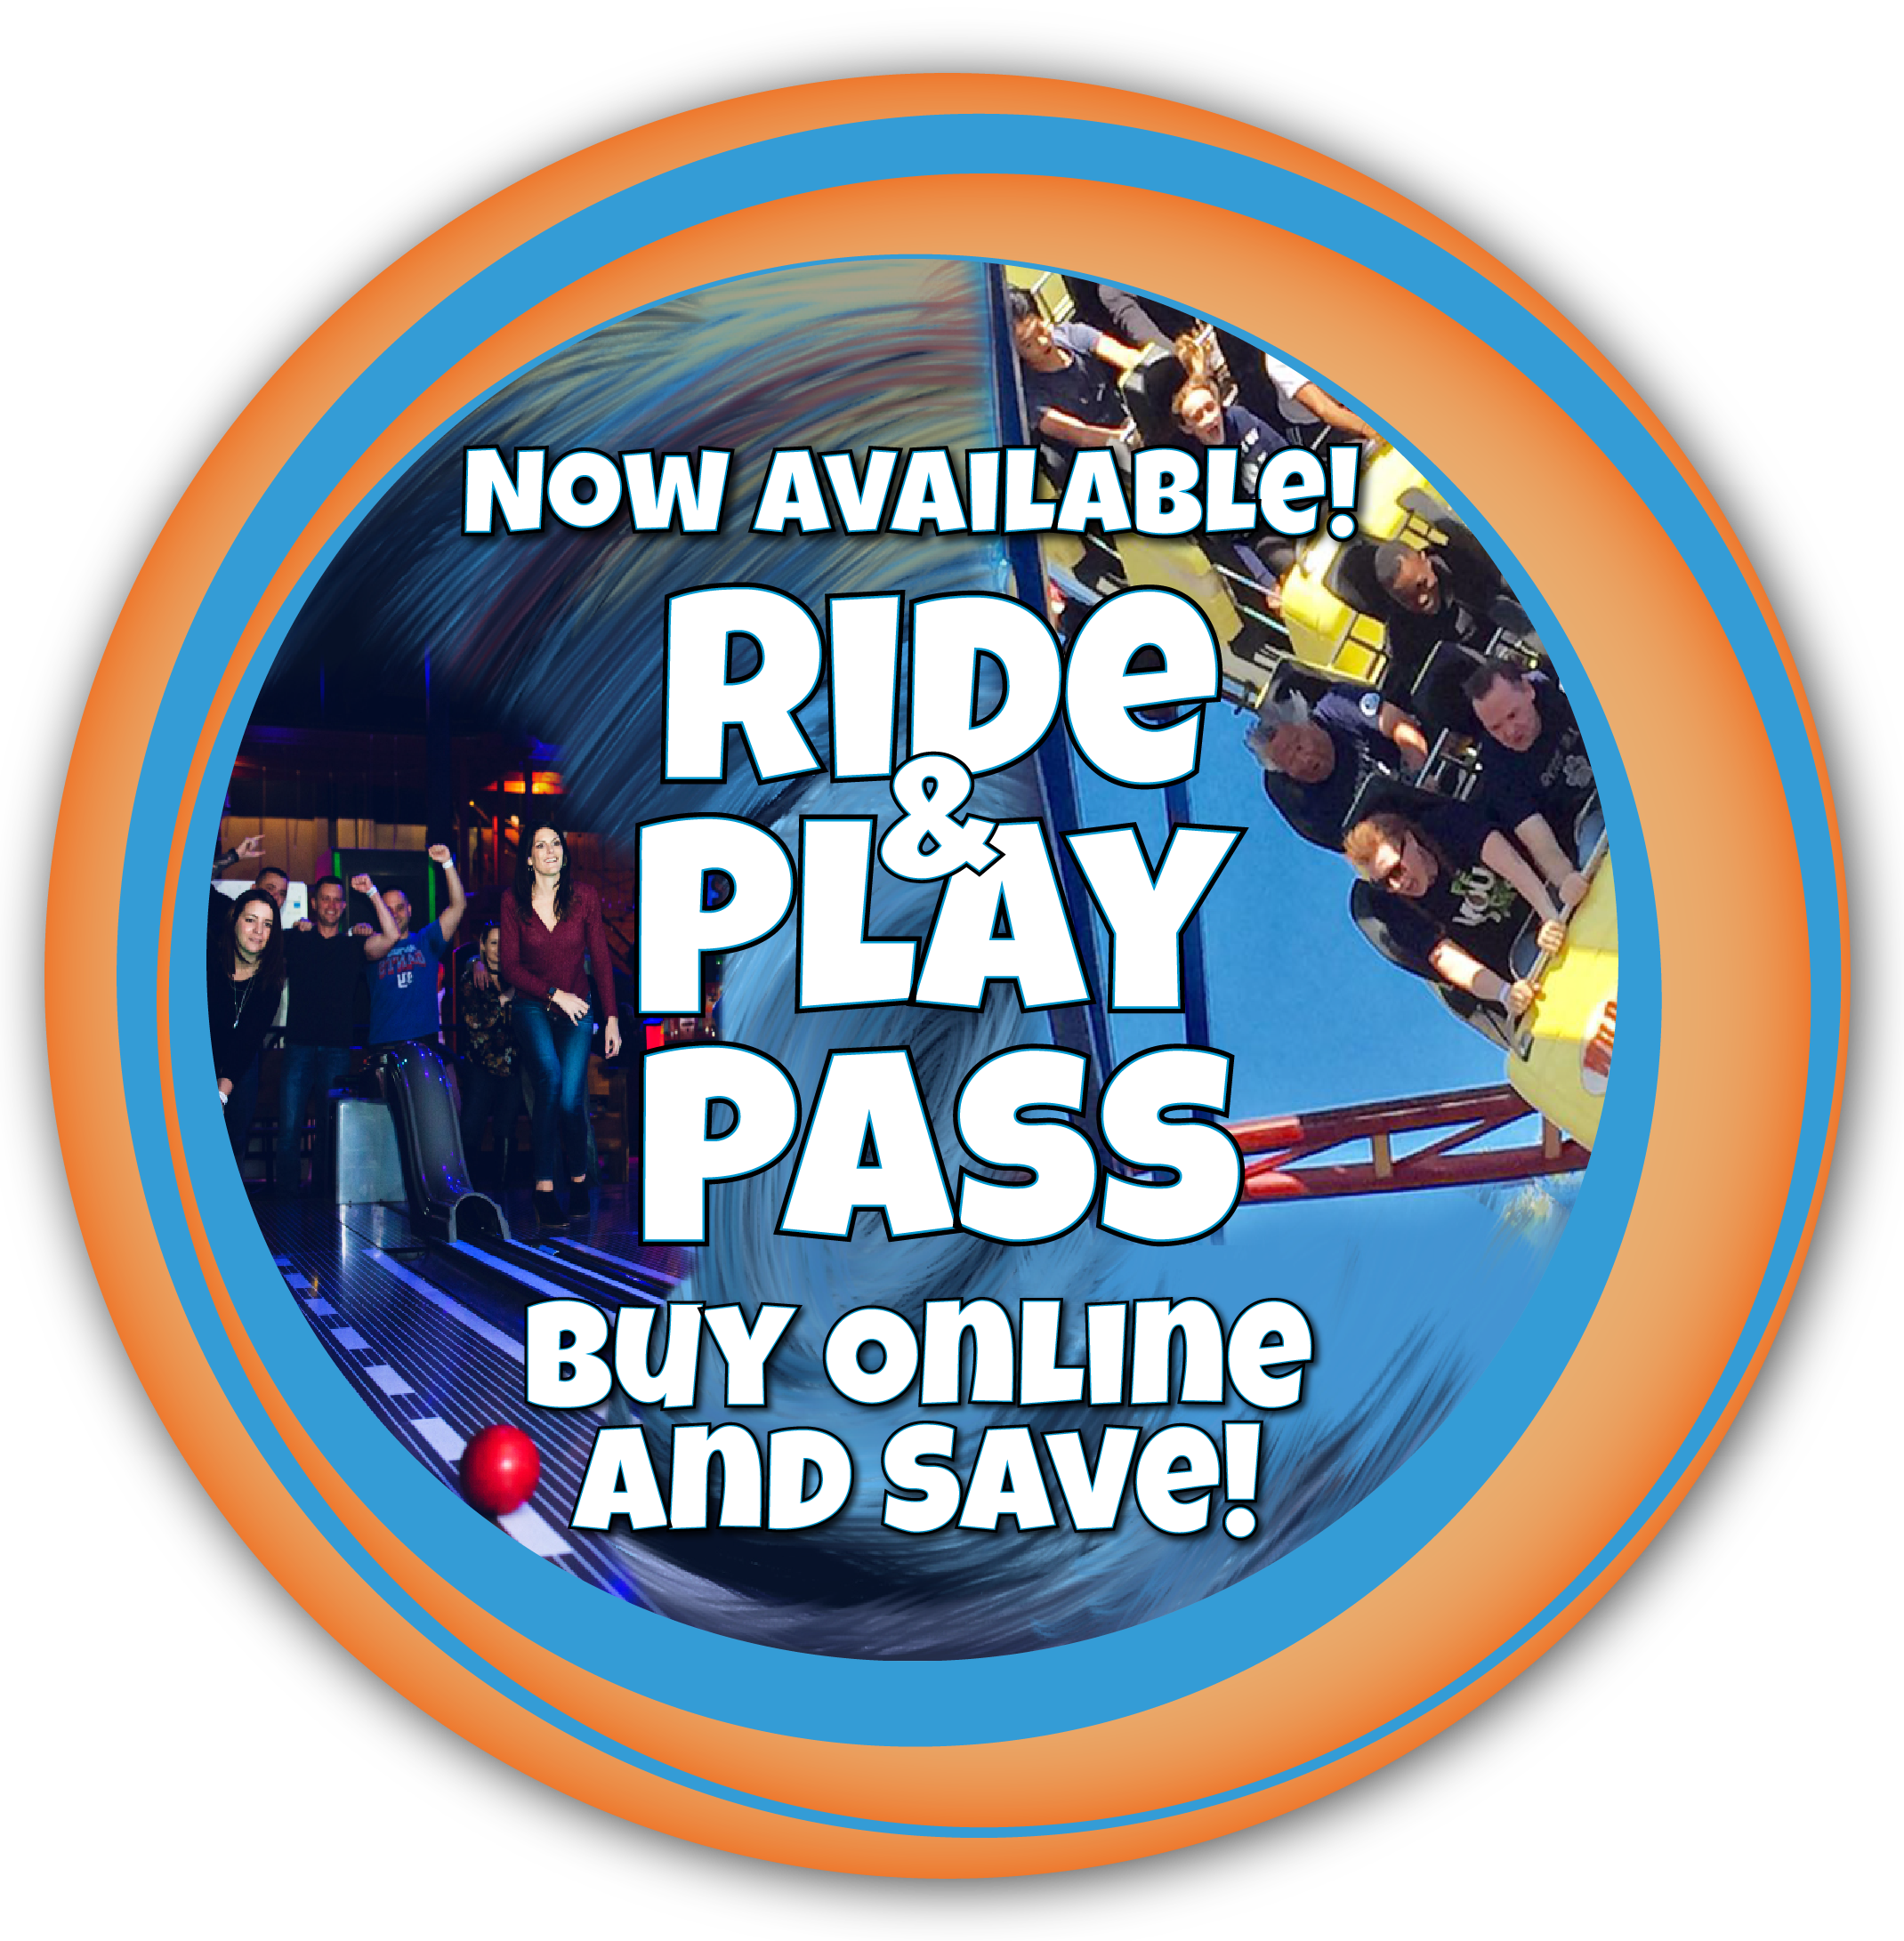 Ride & Play Pass now available! Buy online and save!